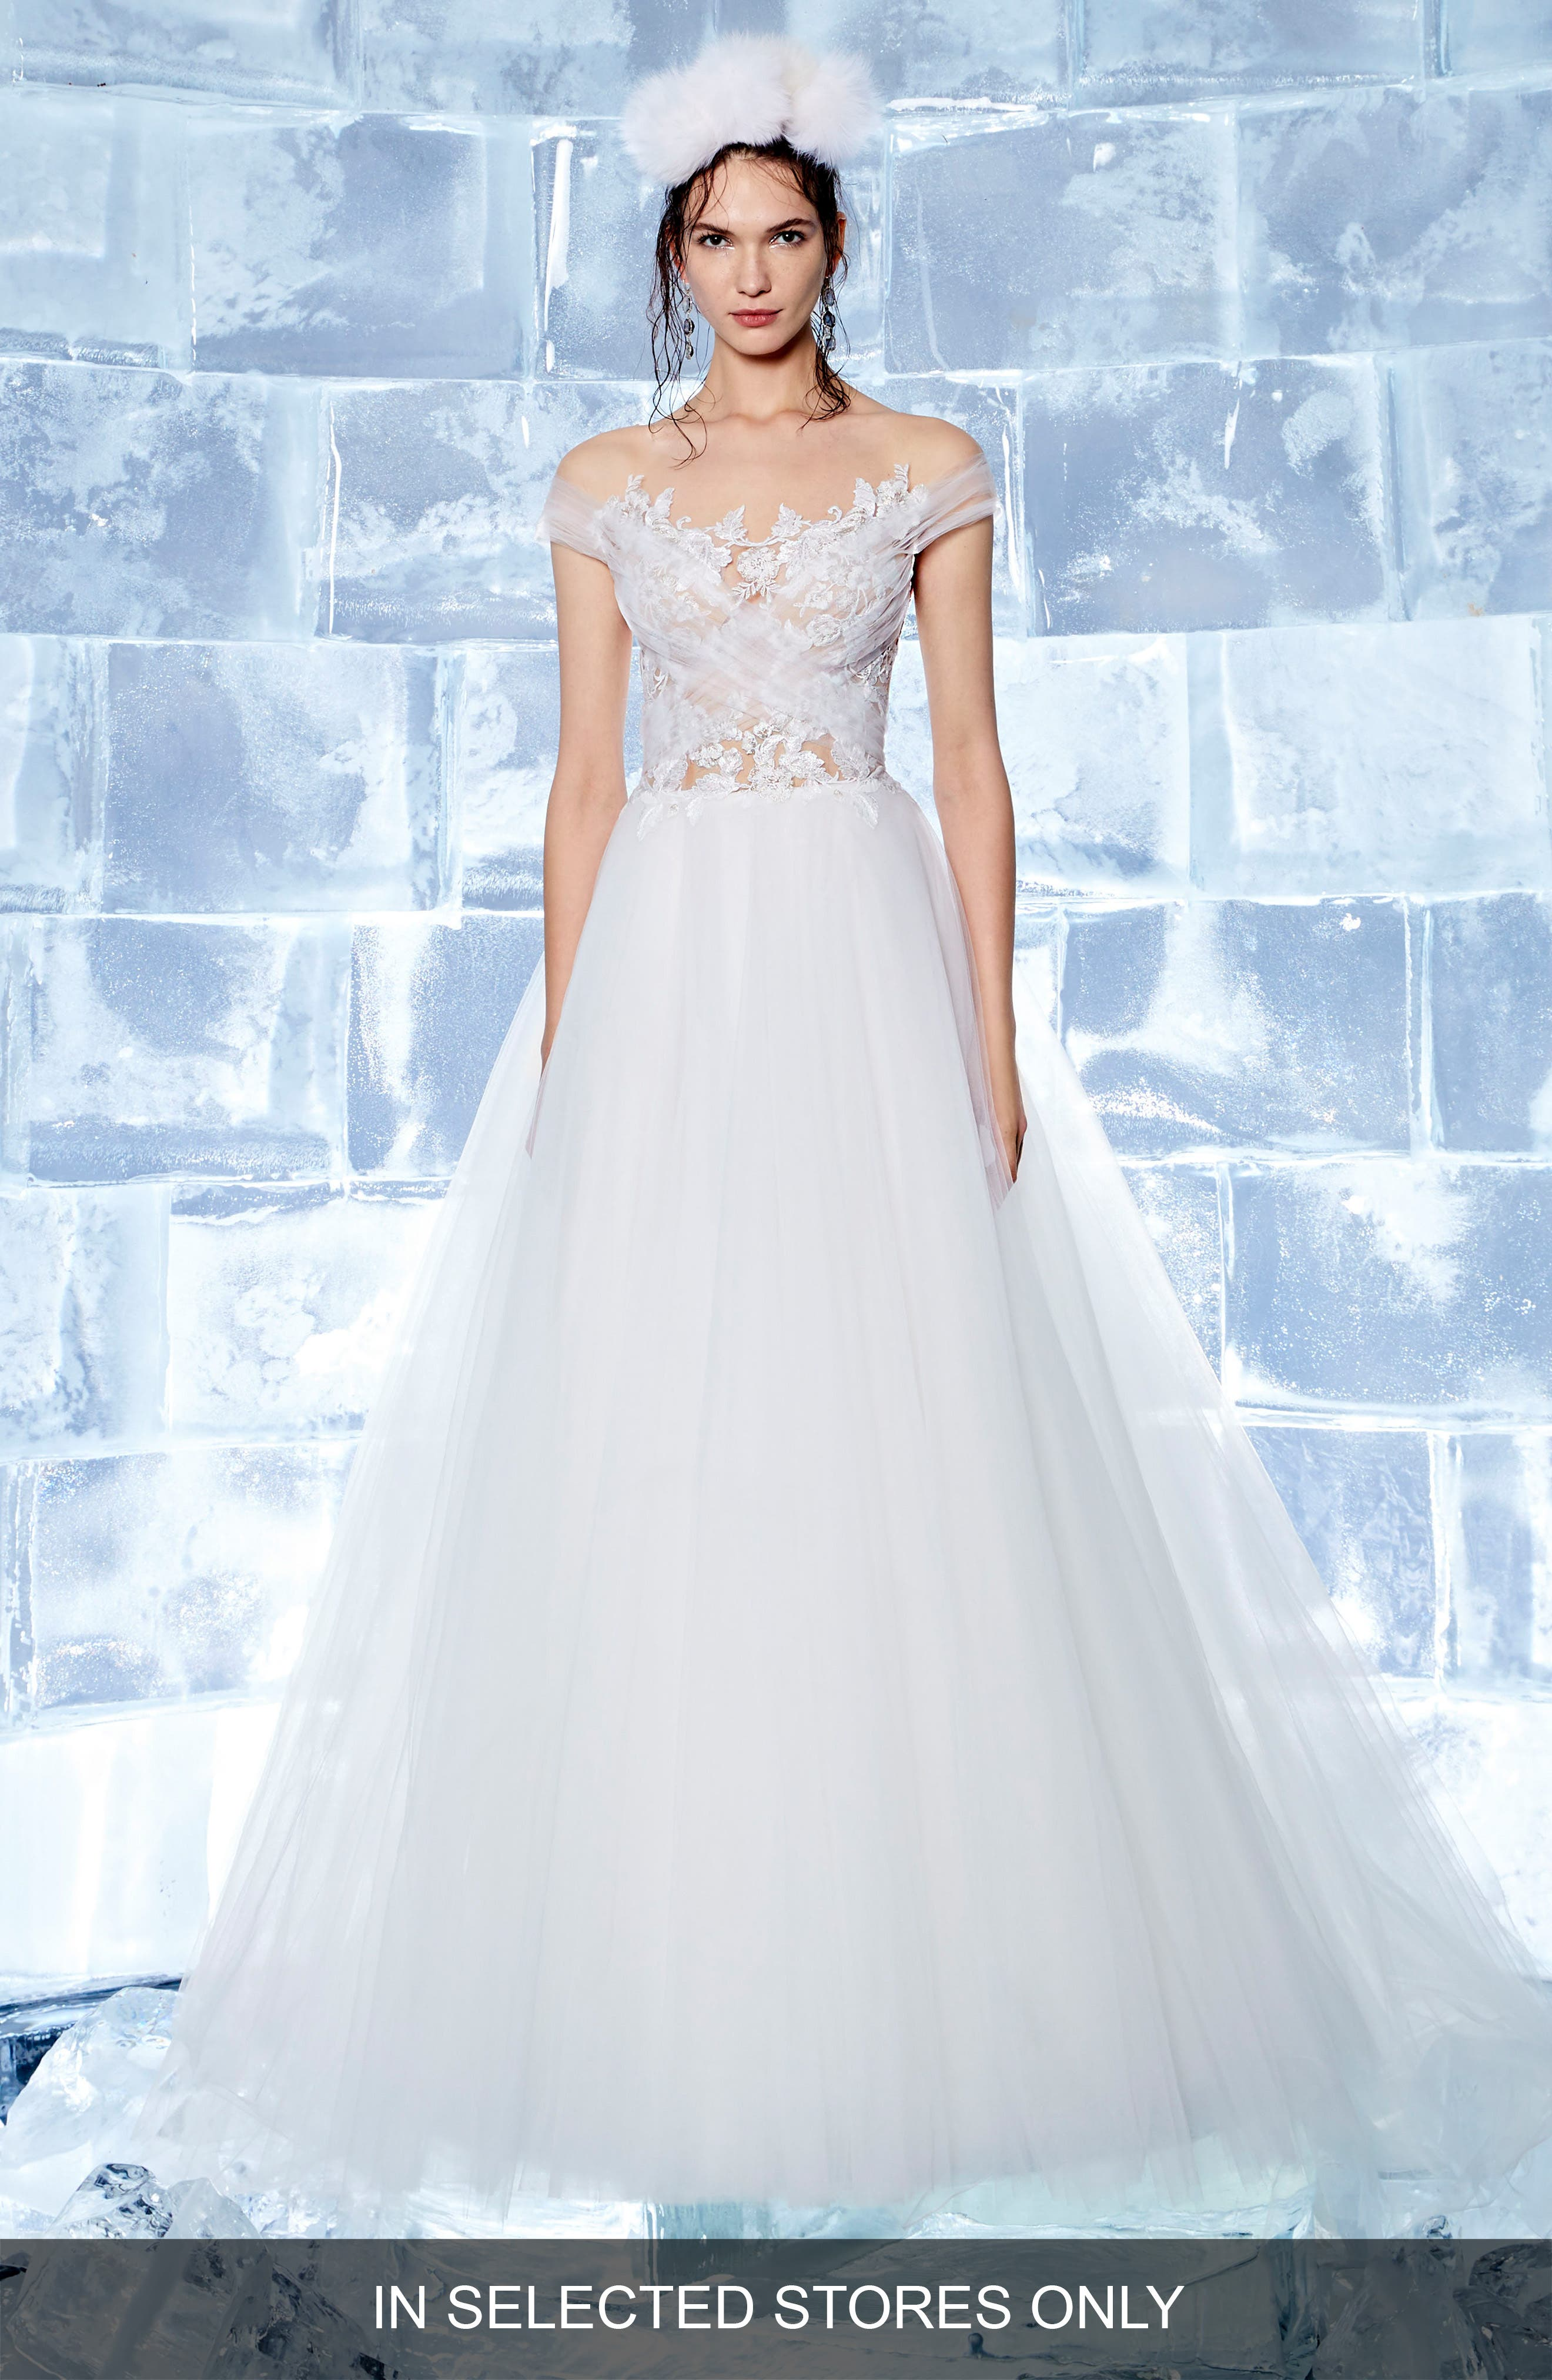 Neive Off the Shoulder Ballgown,                             Main thumbnail 1, color,                             Off White